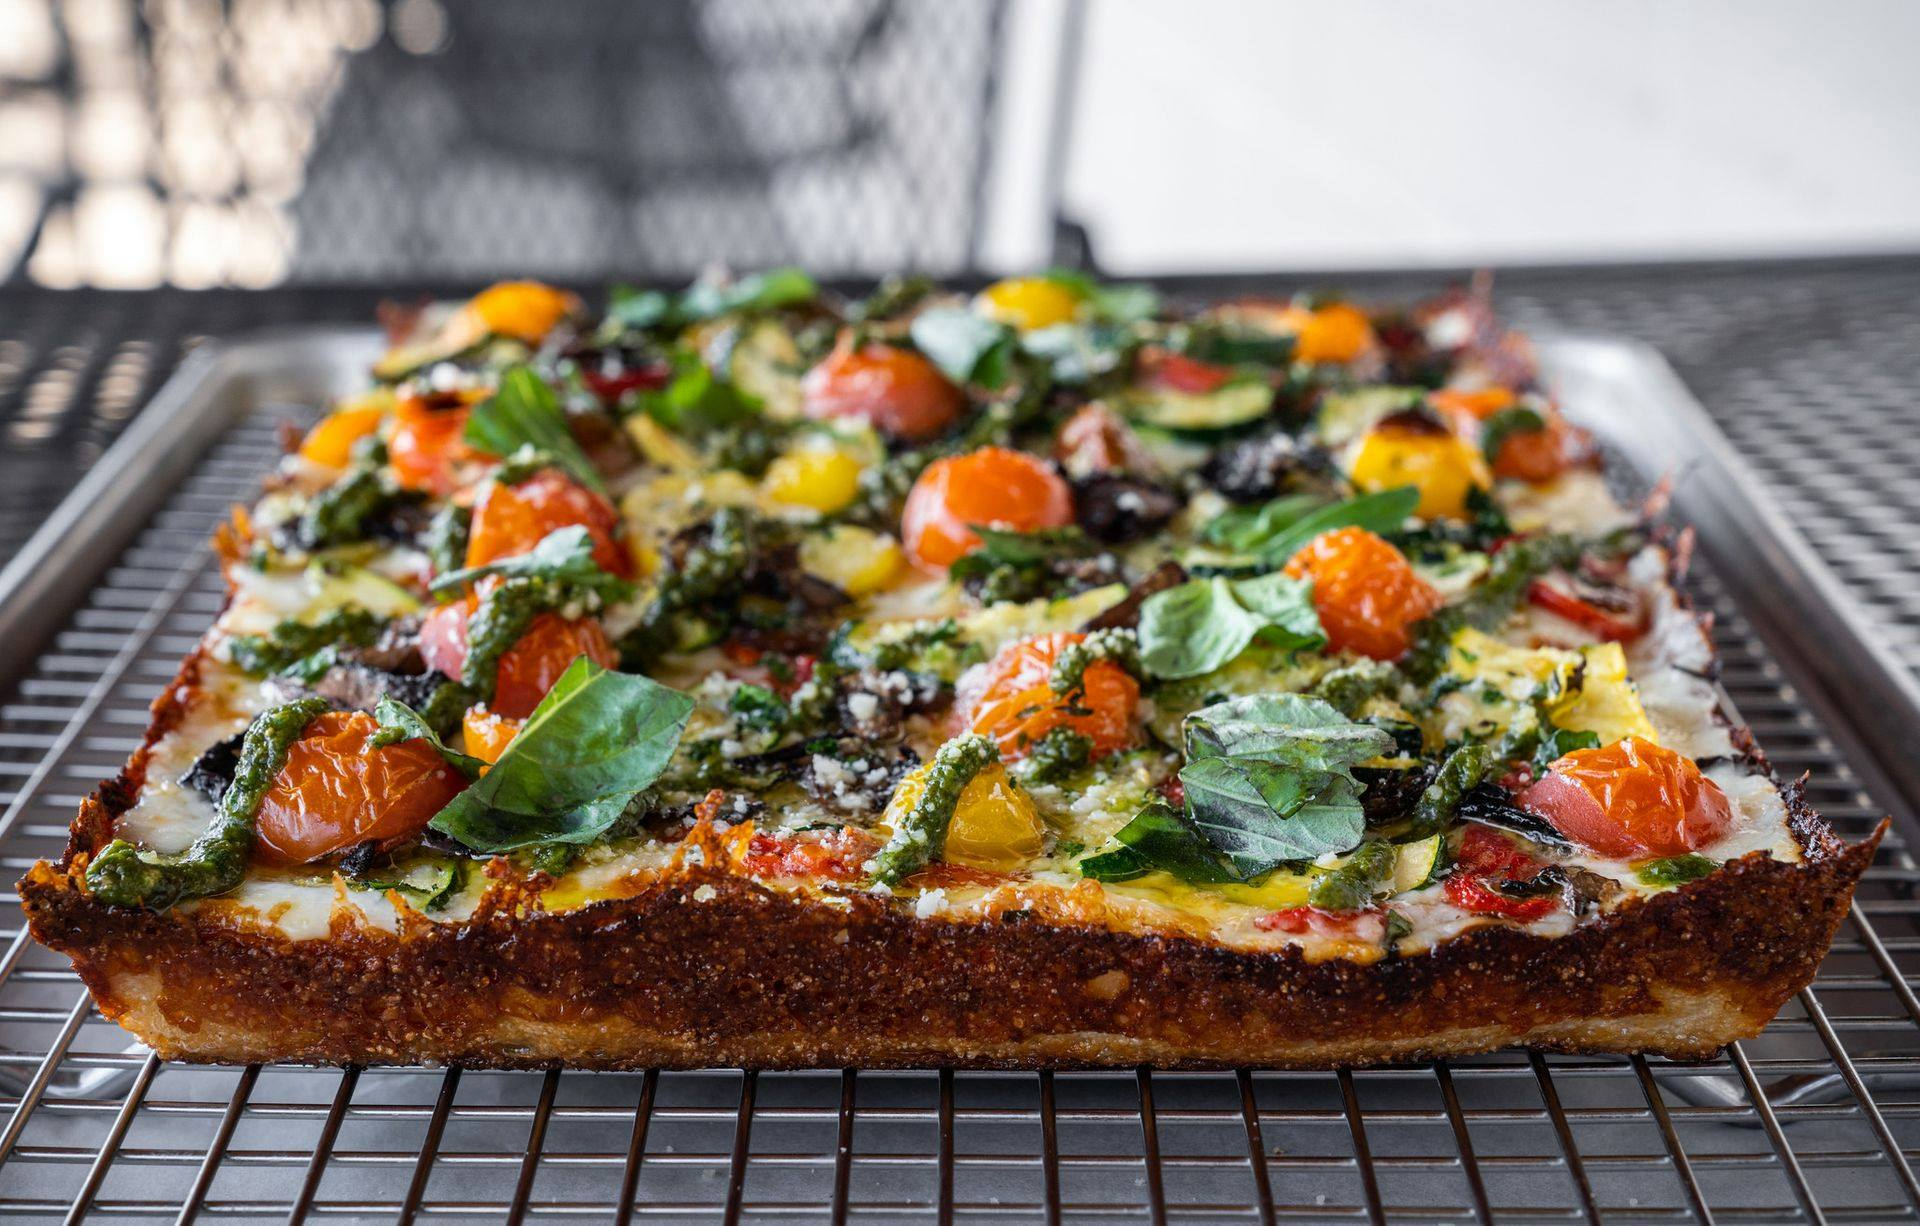 a Detroit-style pizza with crispy edges cooling on a wire rack. The pizza is topped with red and yellow cherry tomatoes and spinach